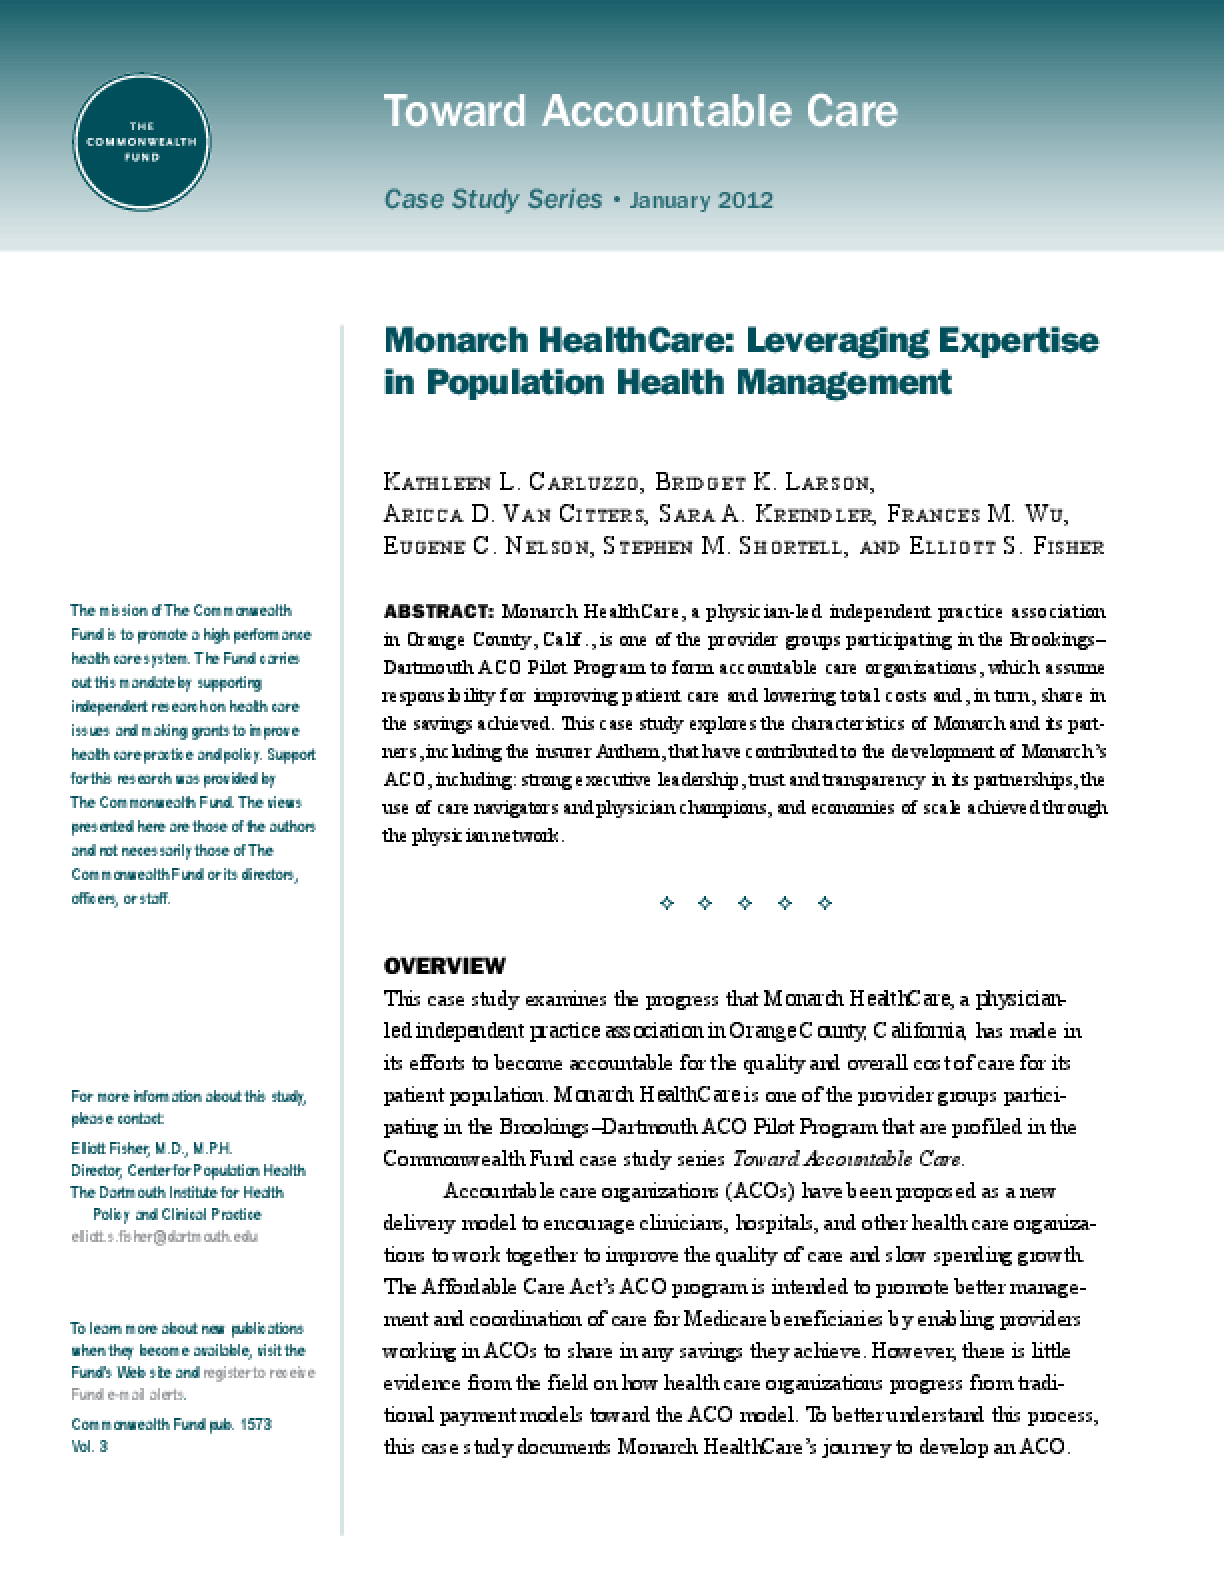 Monarch HealthCare: Leveraging Experience in Population Health Management to Attain Accountable Care